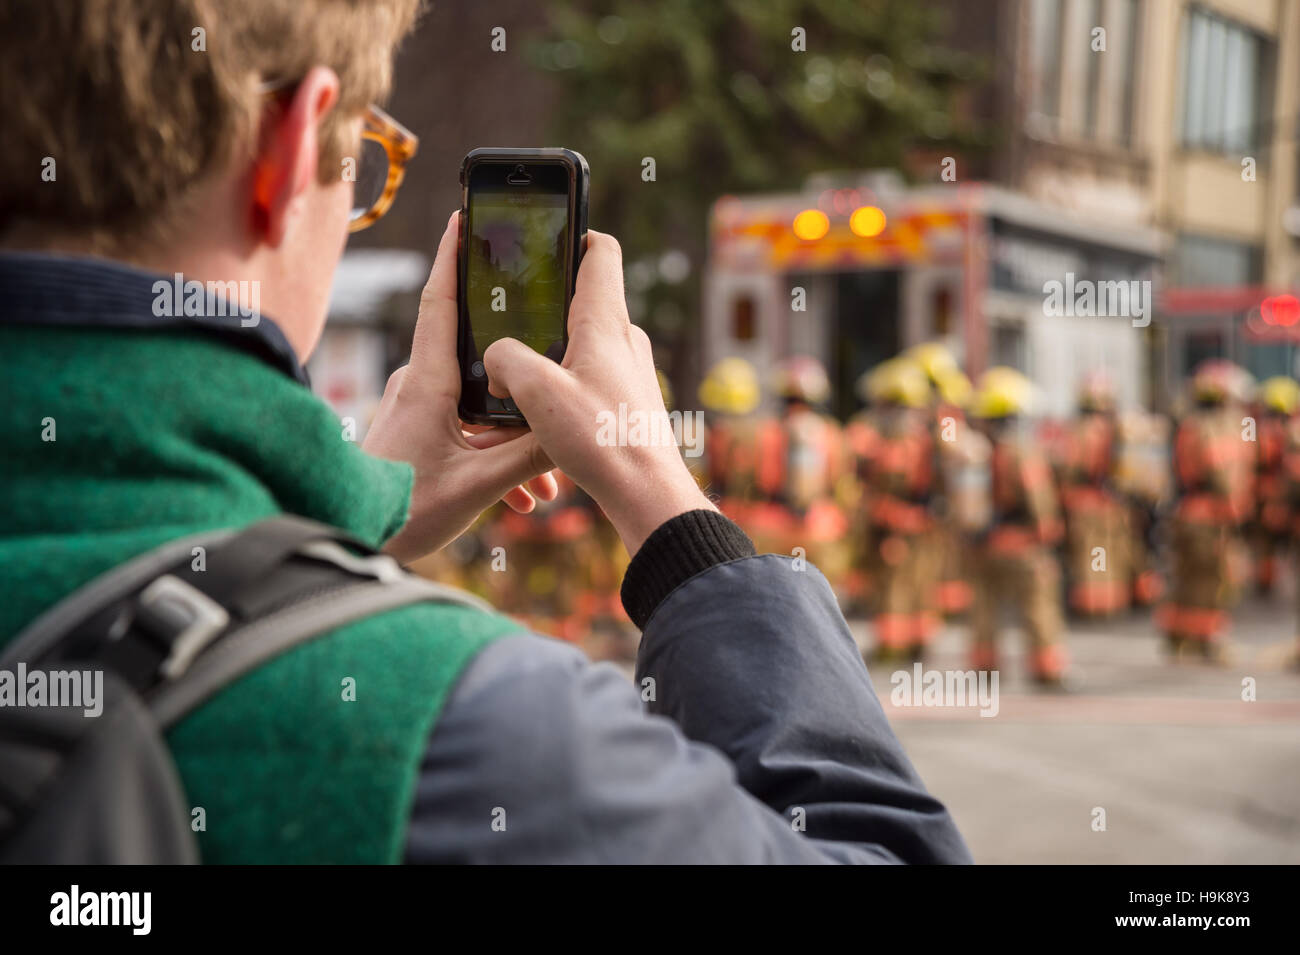 Montreal, CA - 23 Nov 2016: Male Pedestrian takes pictures with smartphone as firefighters work on 'Cafe Amusement - Stock Image